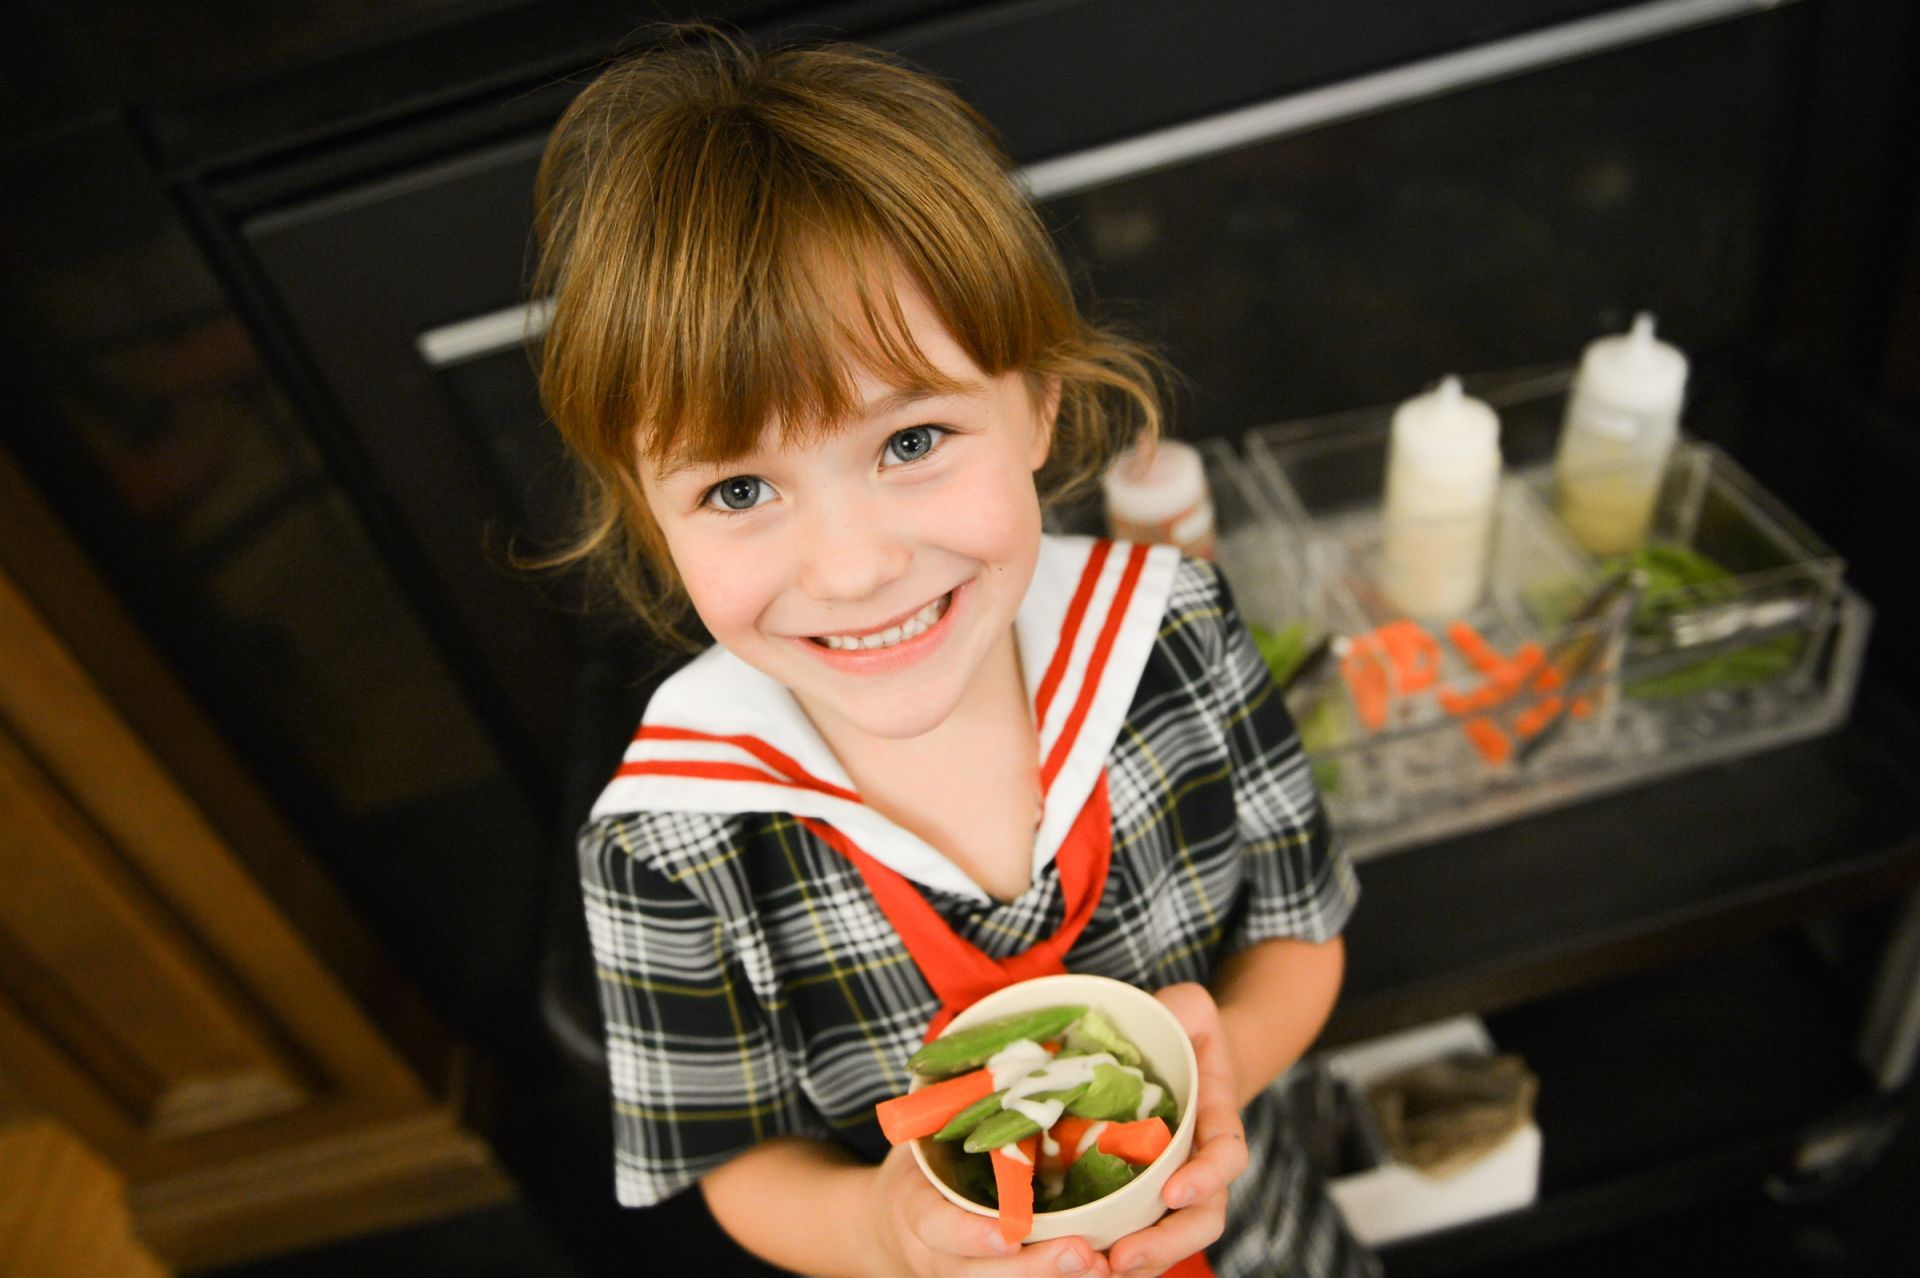 A mini salad bar offers our younger students appealing options.